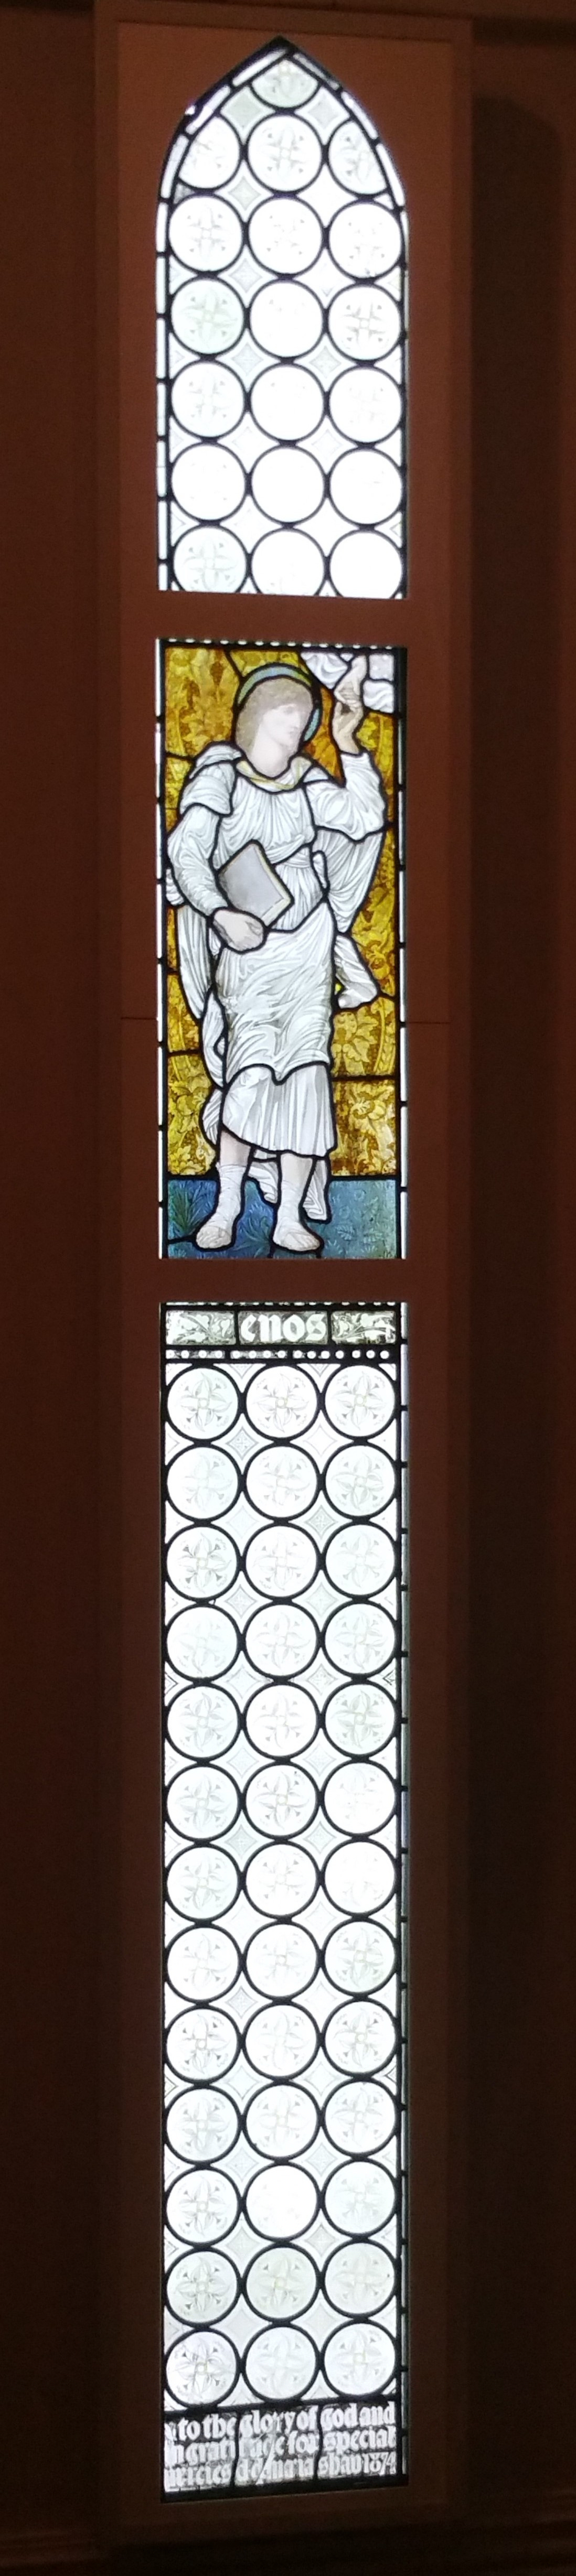 William Morris. Angel with a book. Stained glass window in the gallery of William Morris in London